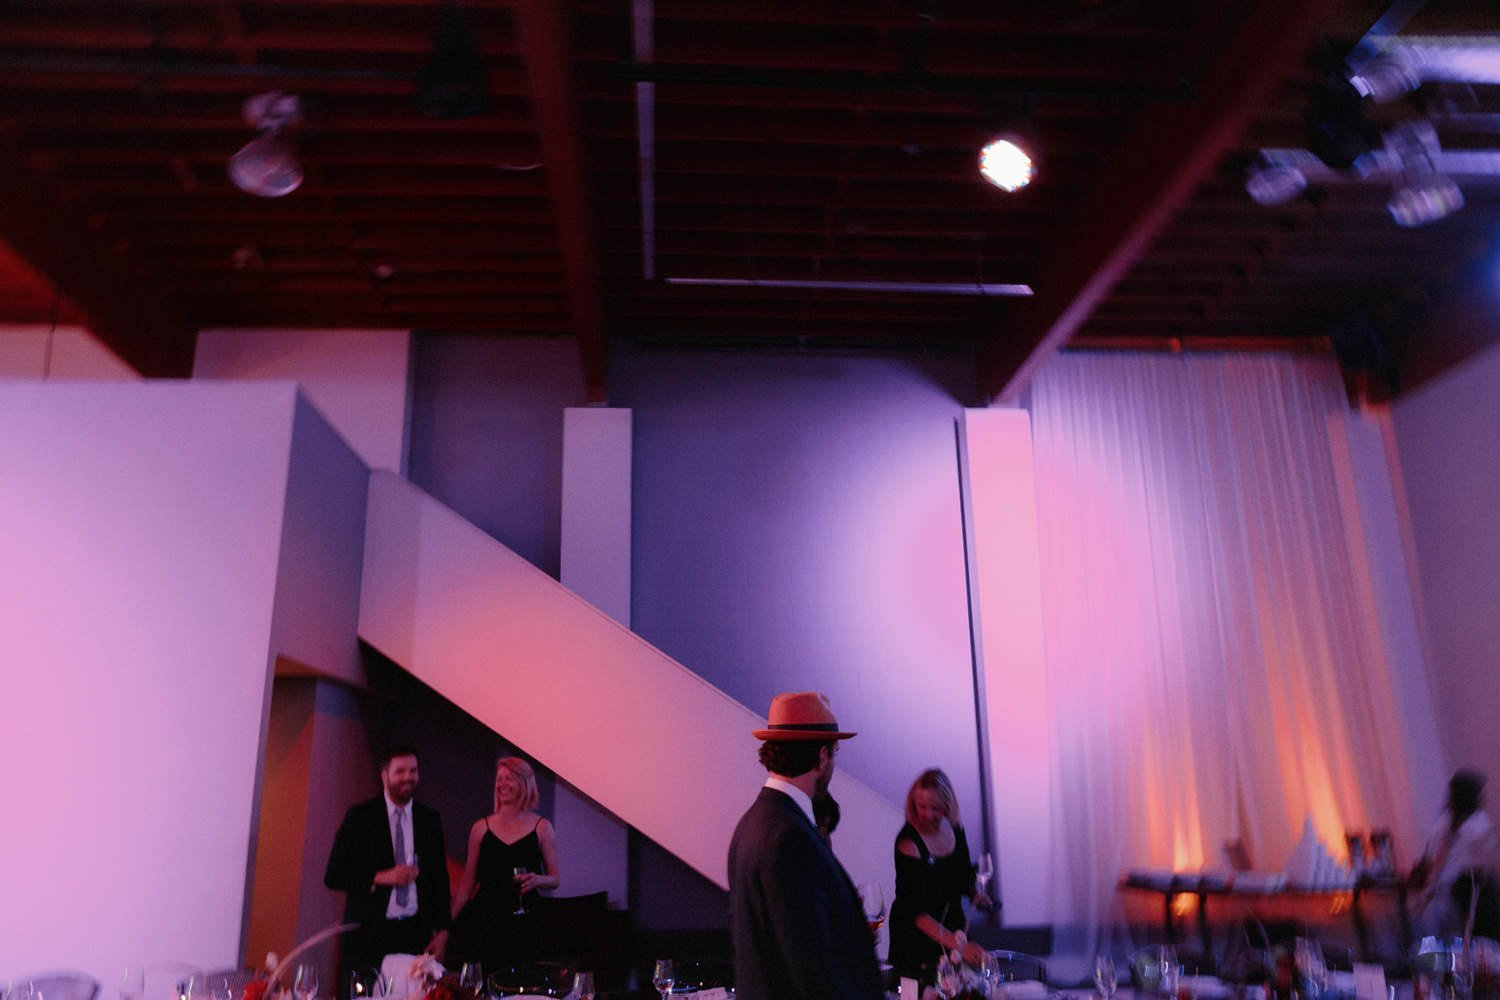 minimalist event spaces in vancouver